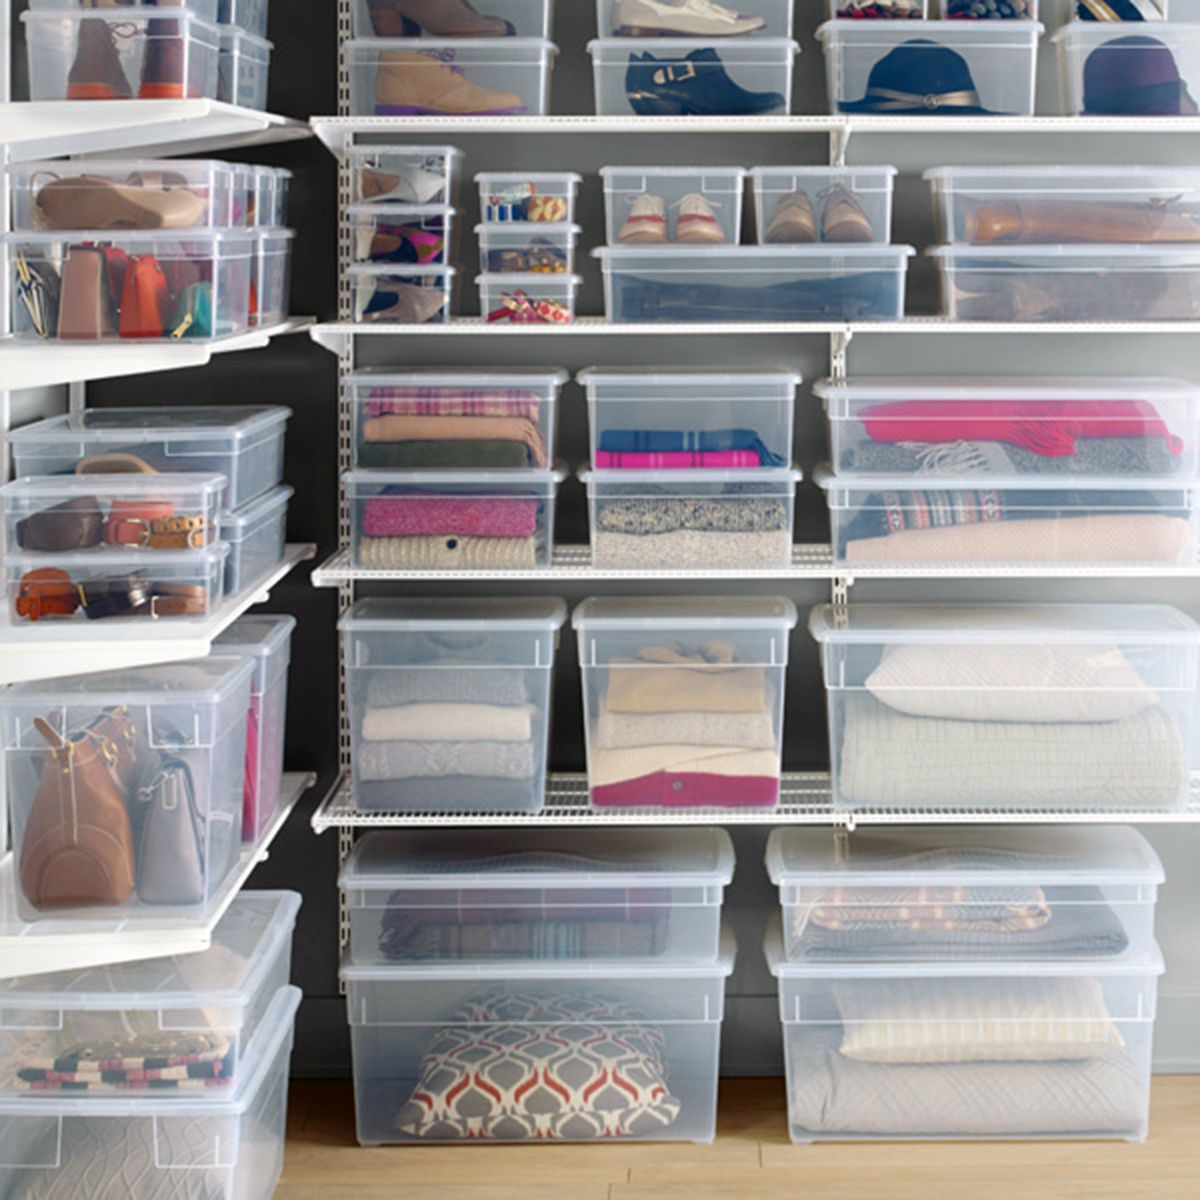 organizing with closets hgtv s design labeled kids decorating closet organized bins storage infant organize clean and